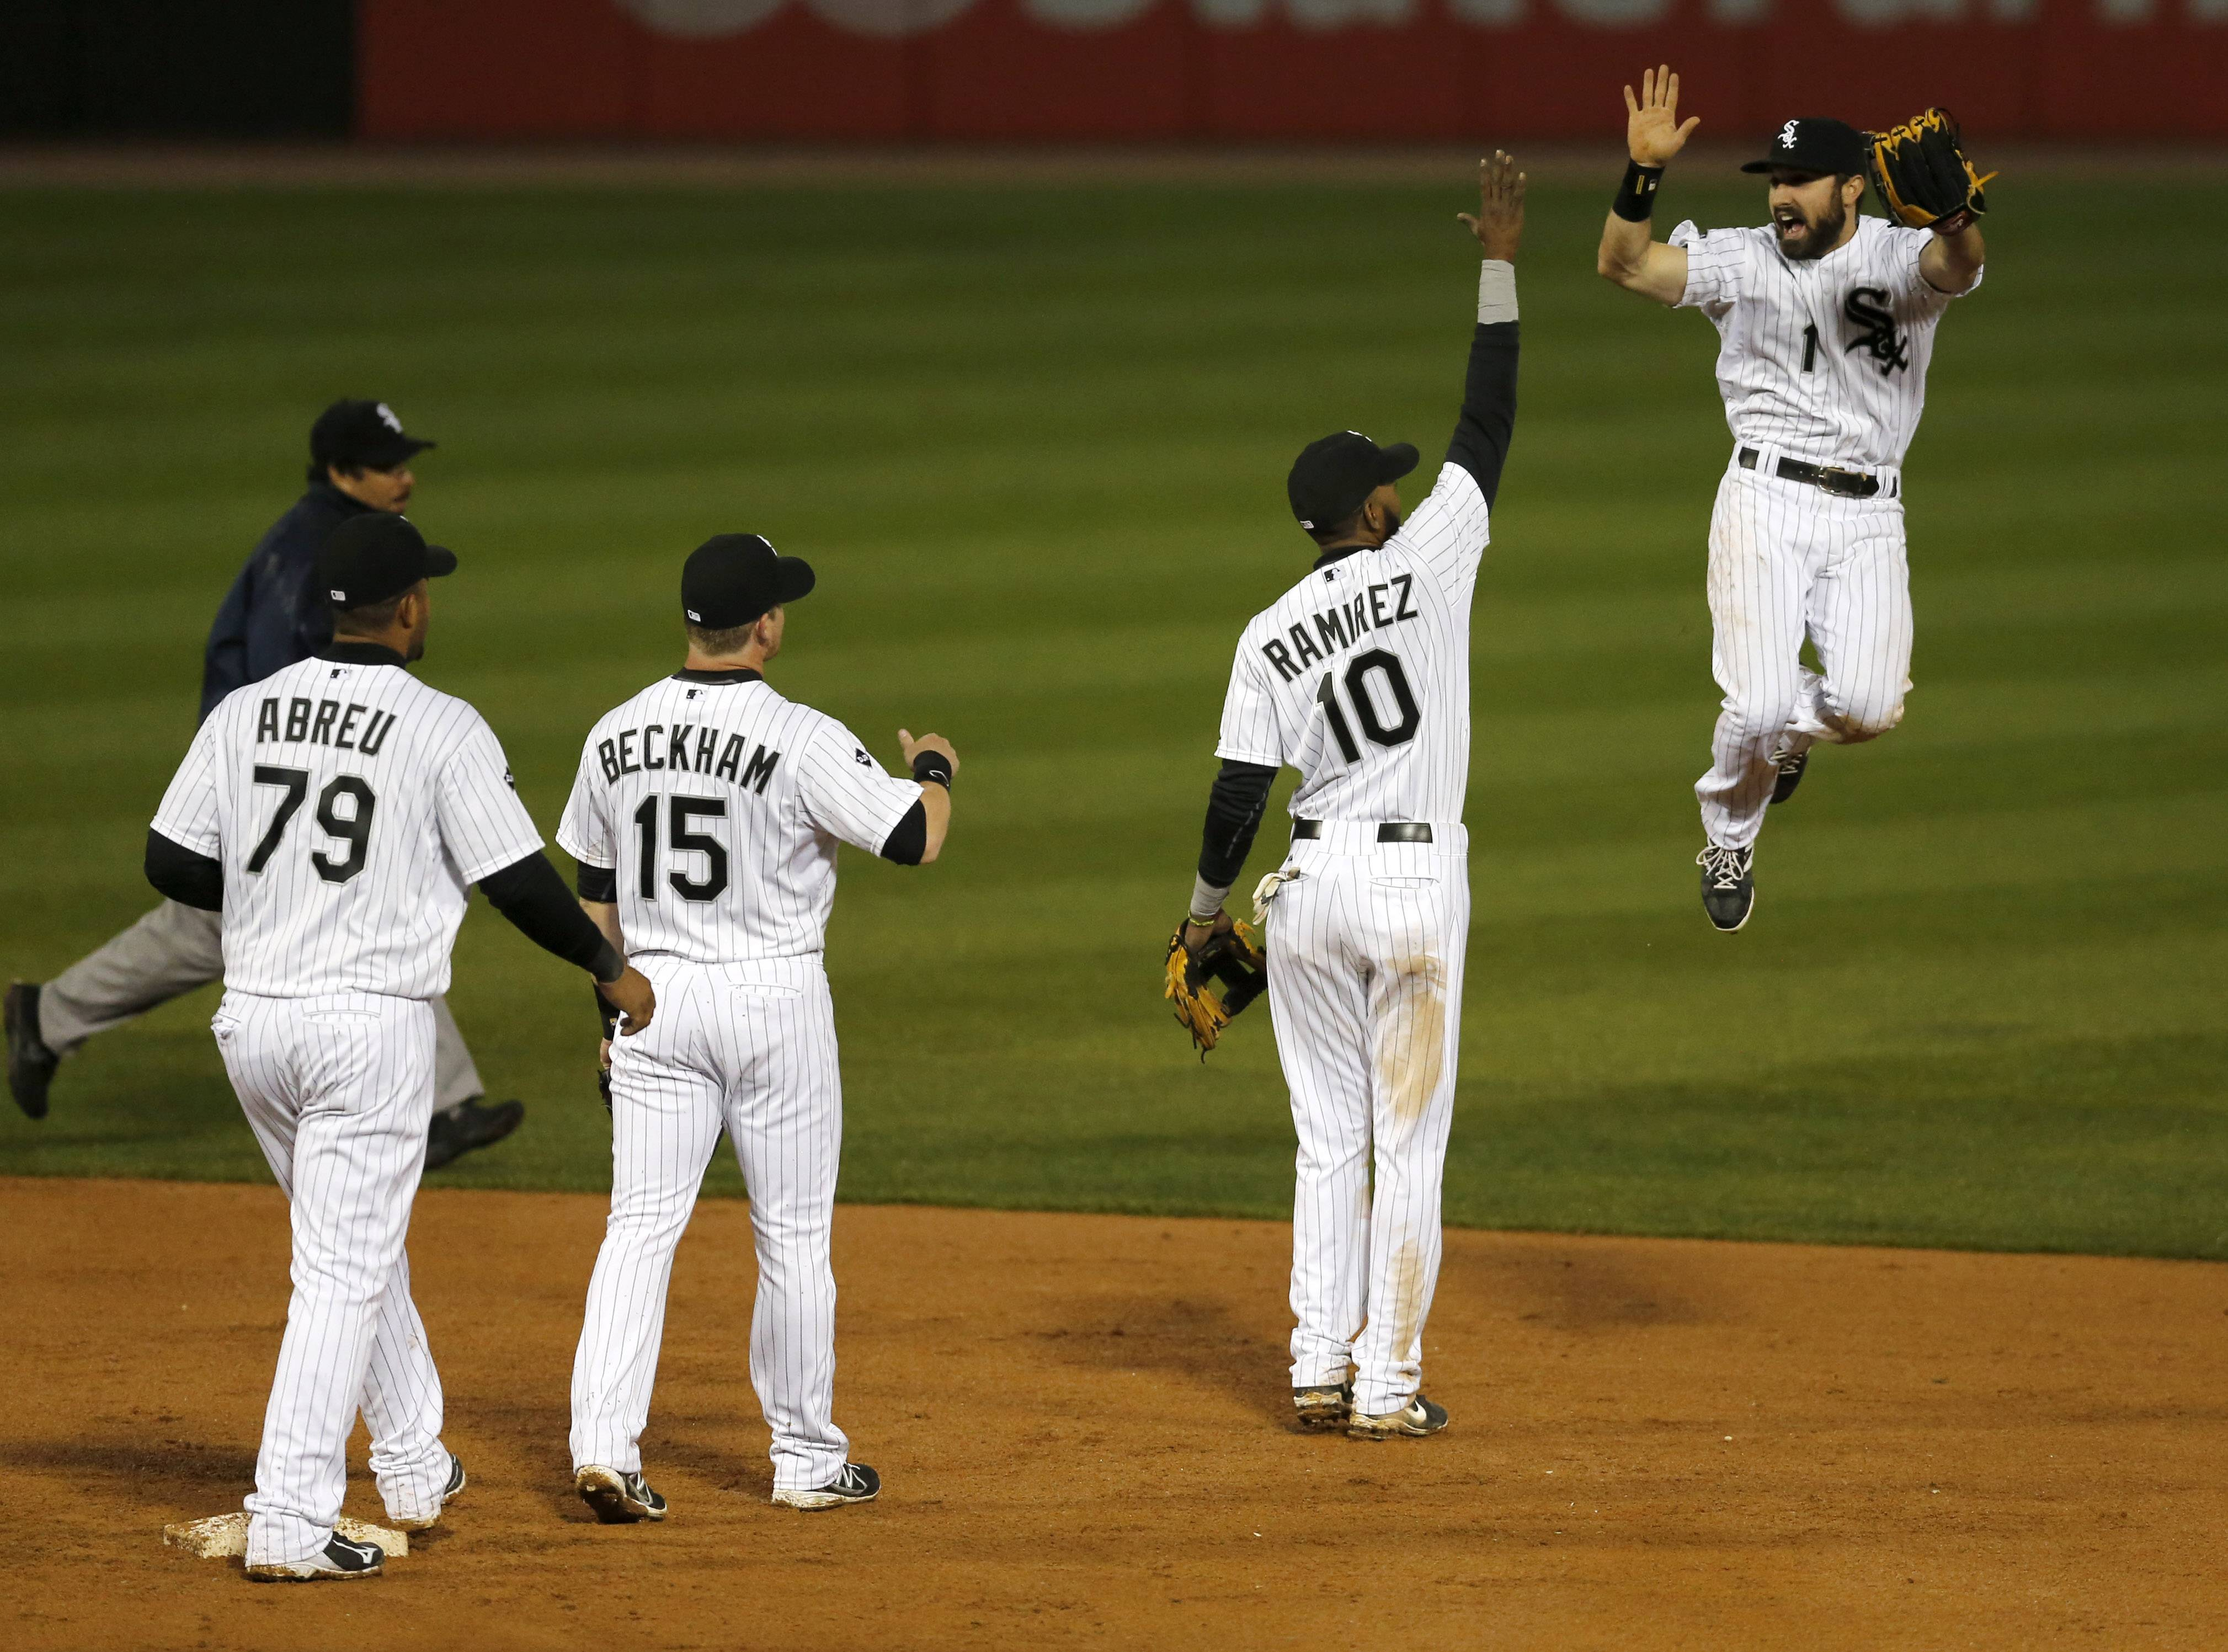 Chicago White Sox shortstop Alexei Ramirez (10) celebrates with Adam Eaton (1) as teammates Jose Abreu (79) and Gordon Beckham (15) watch after the White Sox's 7-3 win over the Tampa Bay Rays.